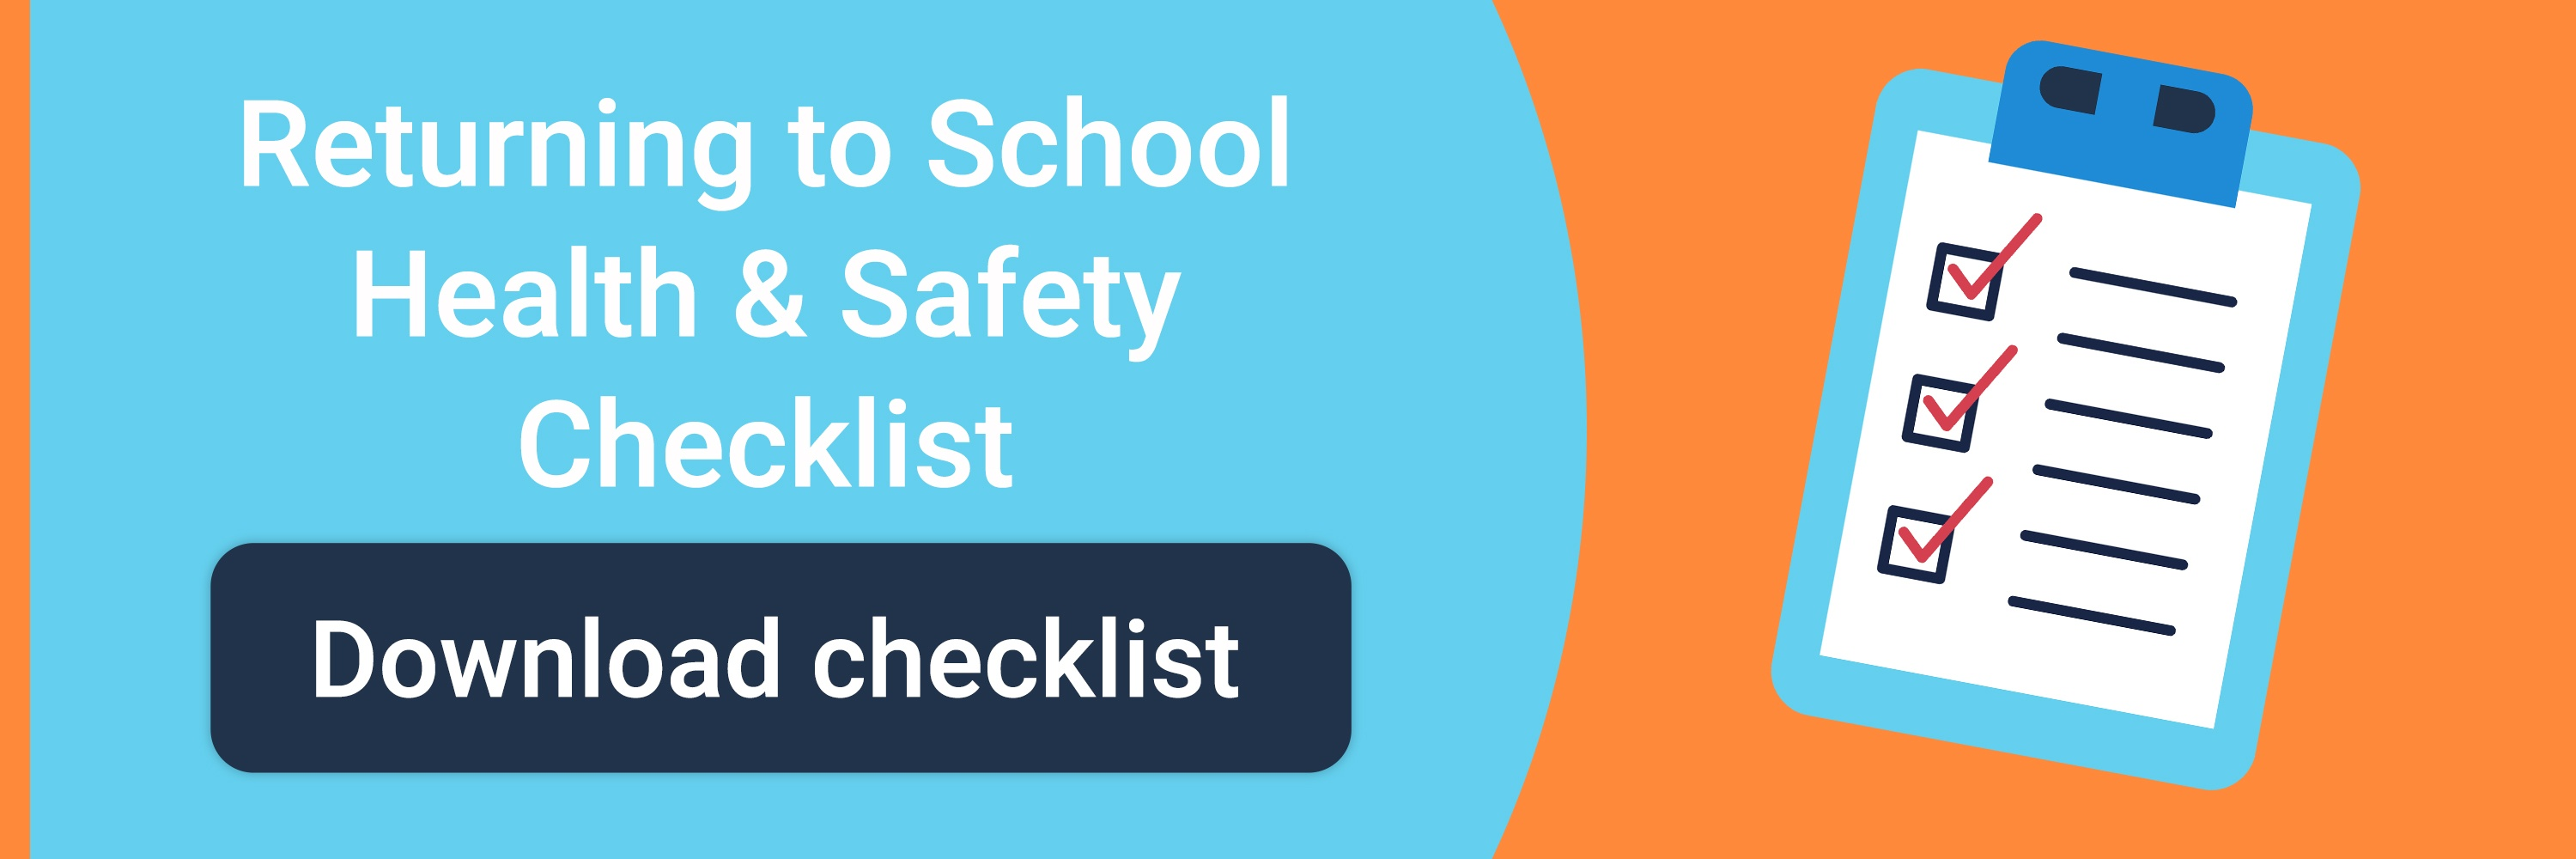 Returning to school health & safety checklist